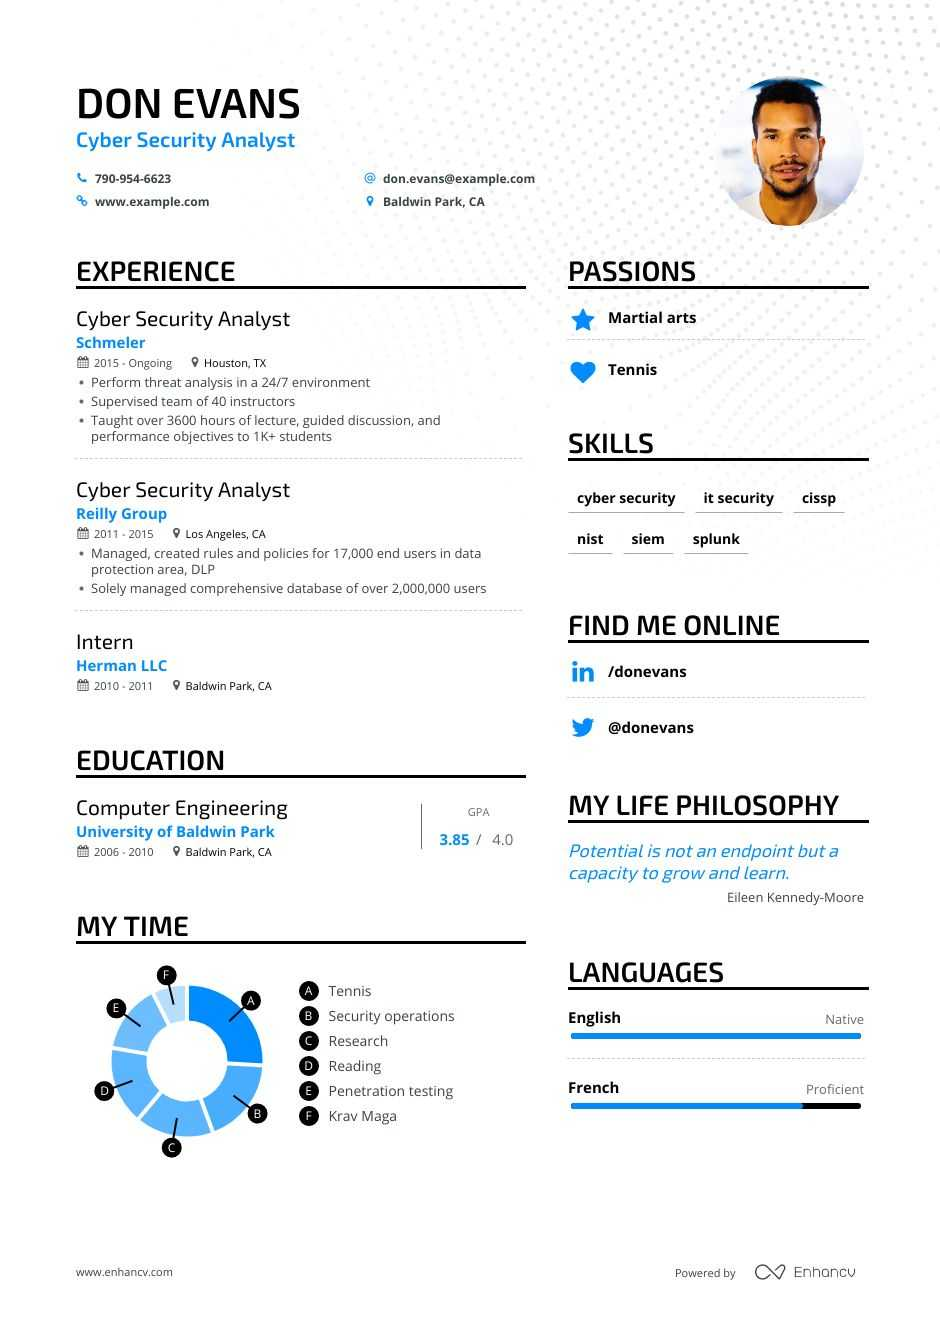 cyber security analyst resume examples guide pro tips enhancv parser foreign language Resume Cyber Security Analyst Resume